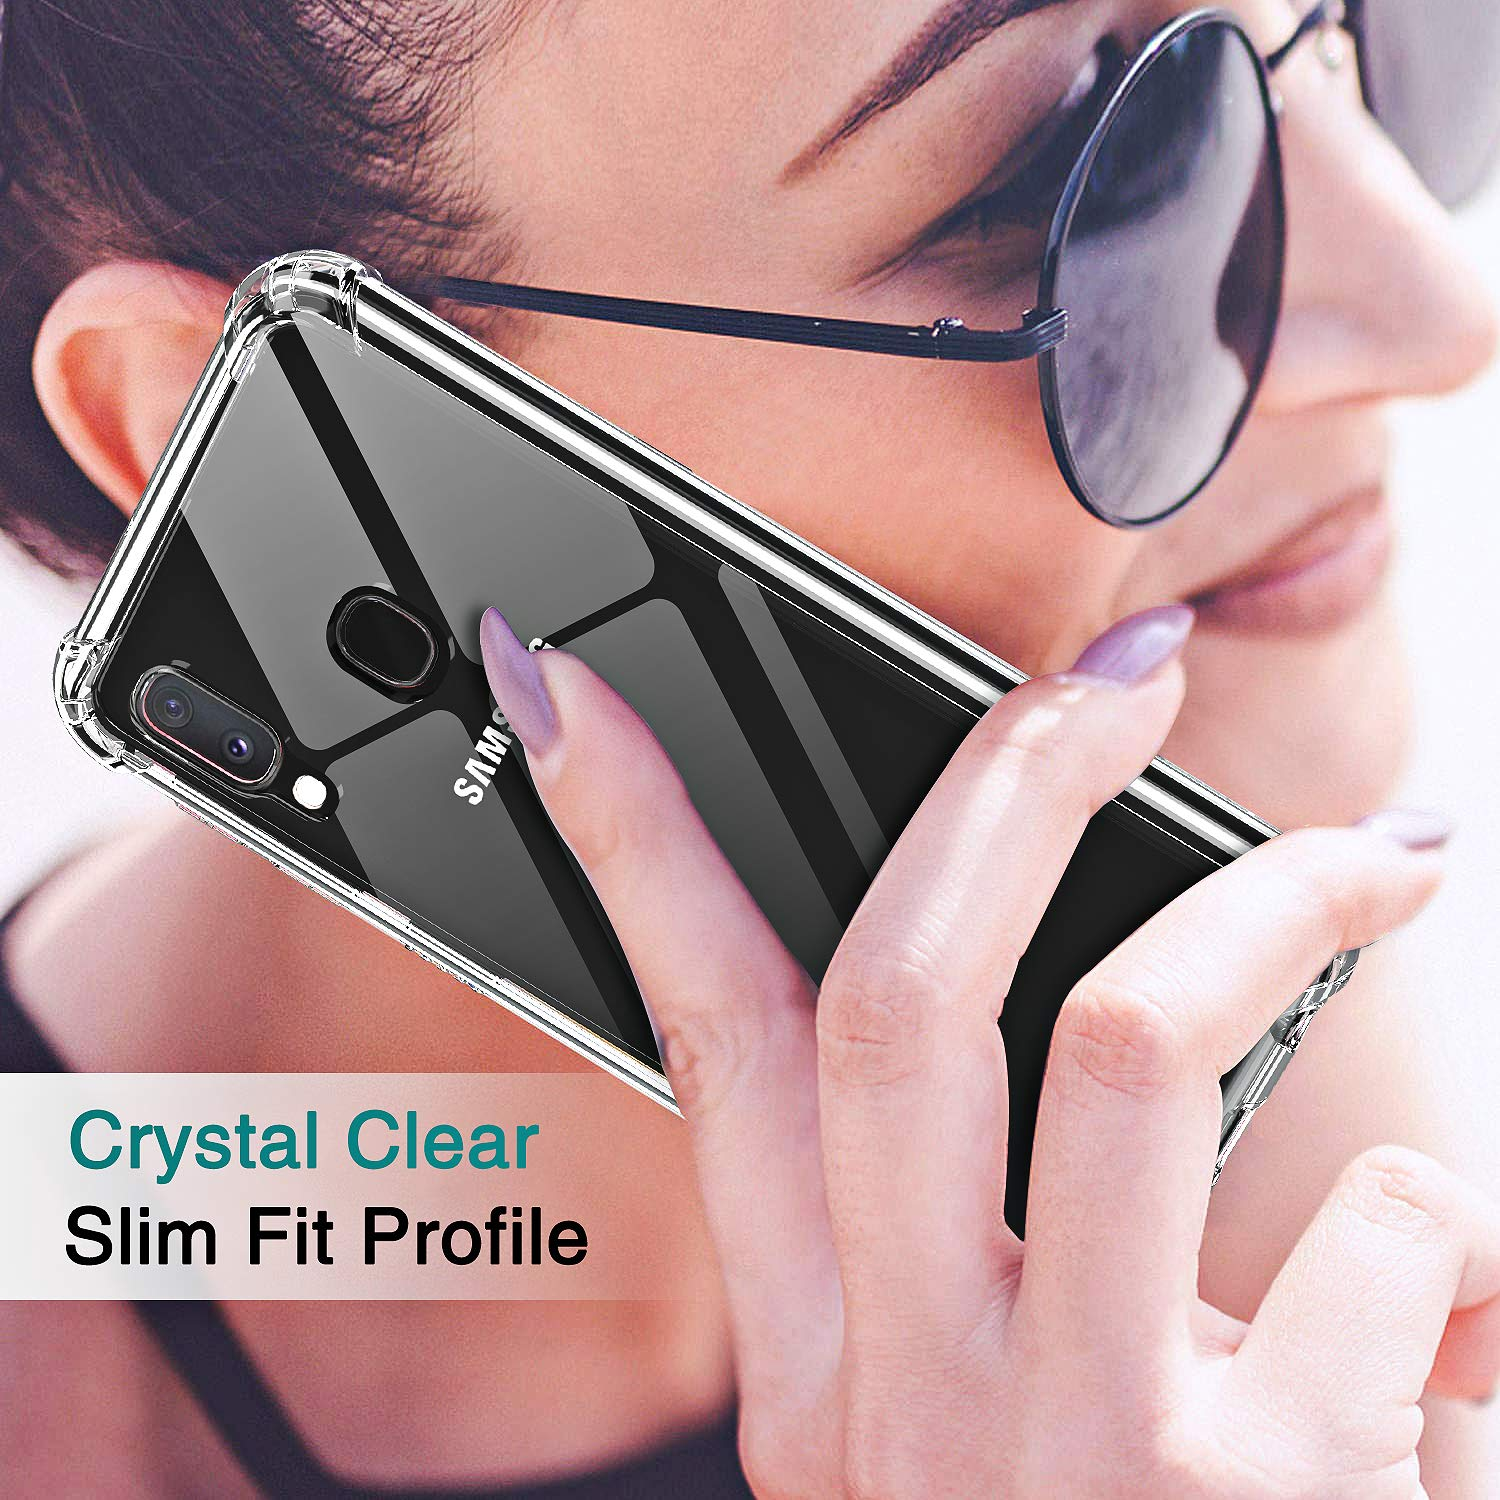 LeYi for Samsung Galaxy A50 Case with Tempered Glass Screen Protector Crystal Clear Air Cushion Full Body Shockproof Silicone Bumper Hard PC Back Phone Cover for samsung A50 2 pack Military Grade